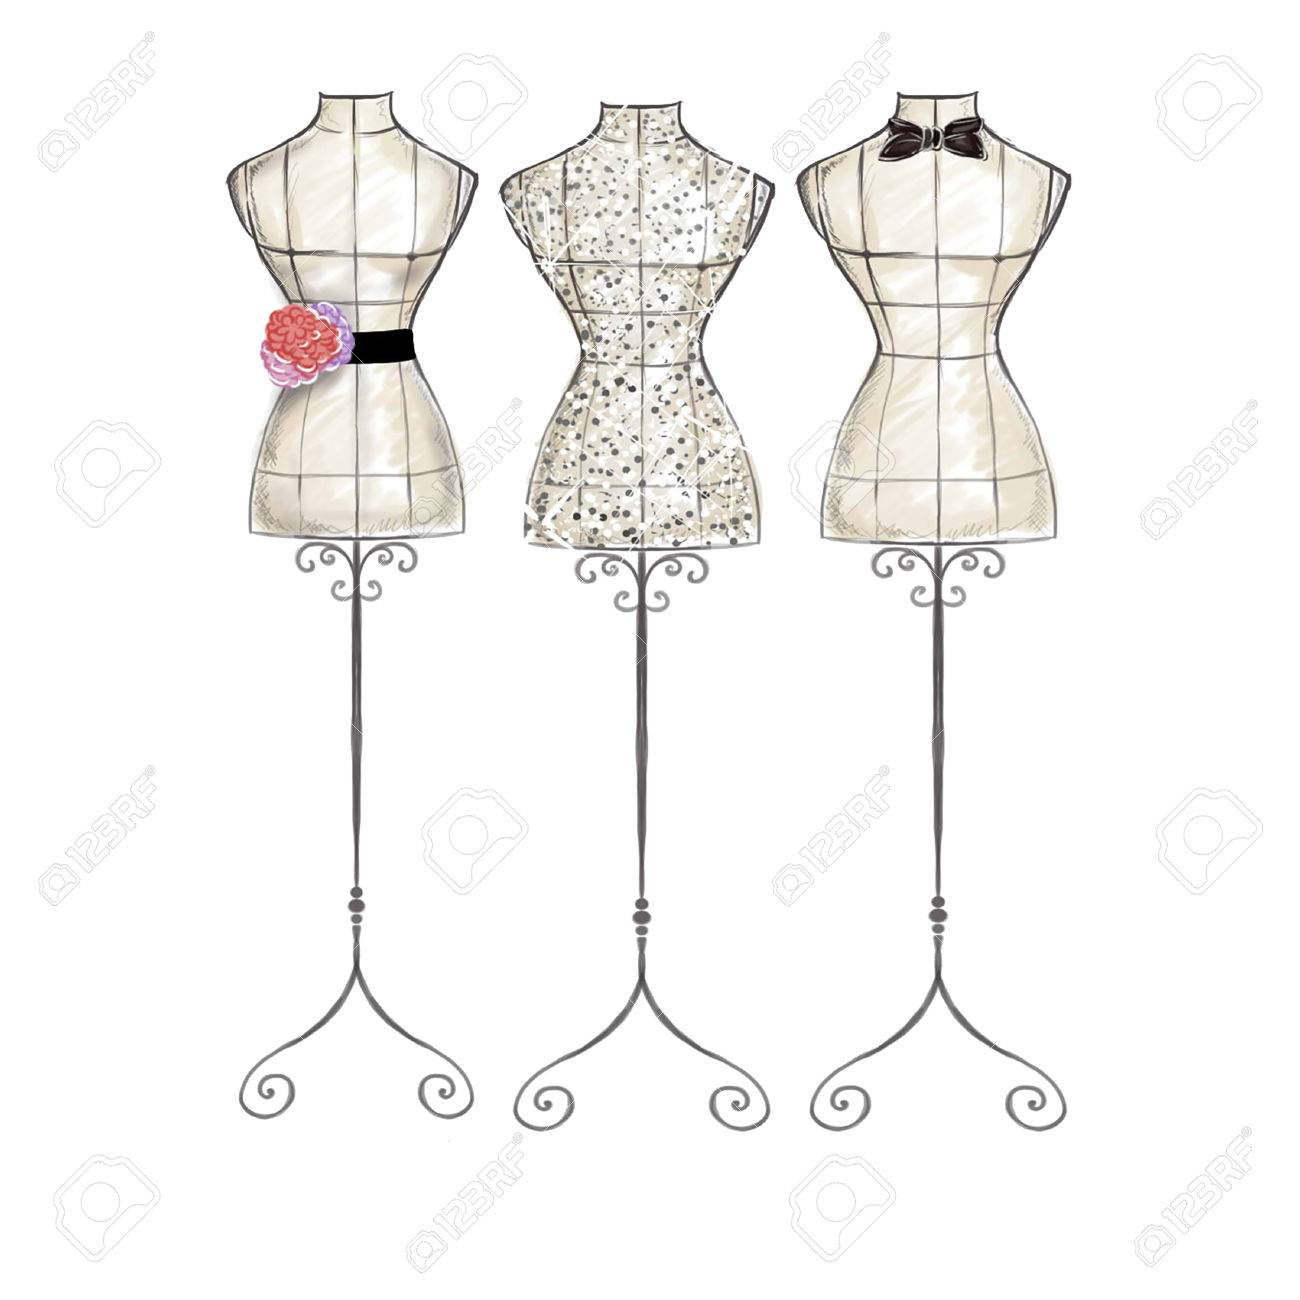 Fashion Illustration Hand Draw Watercolor Mannequins Stock Photo Picture And Royalty Free Image Image 49178749